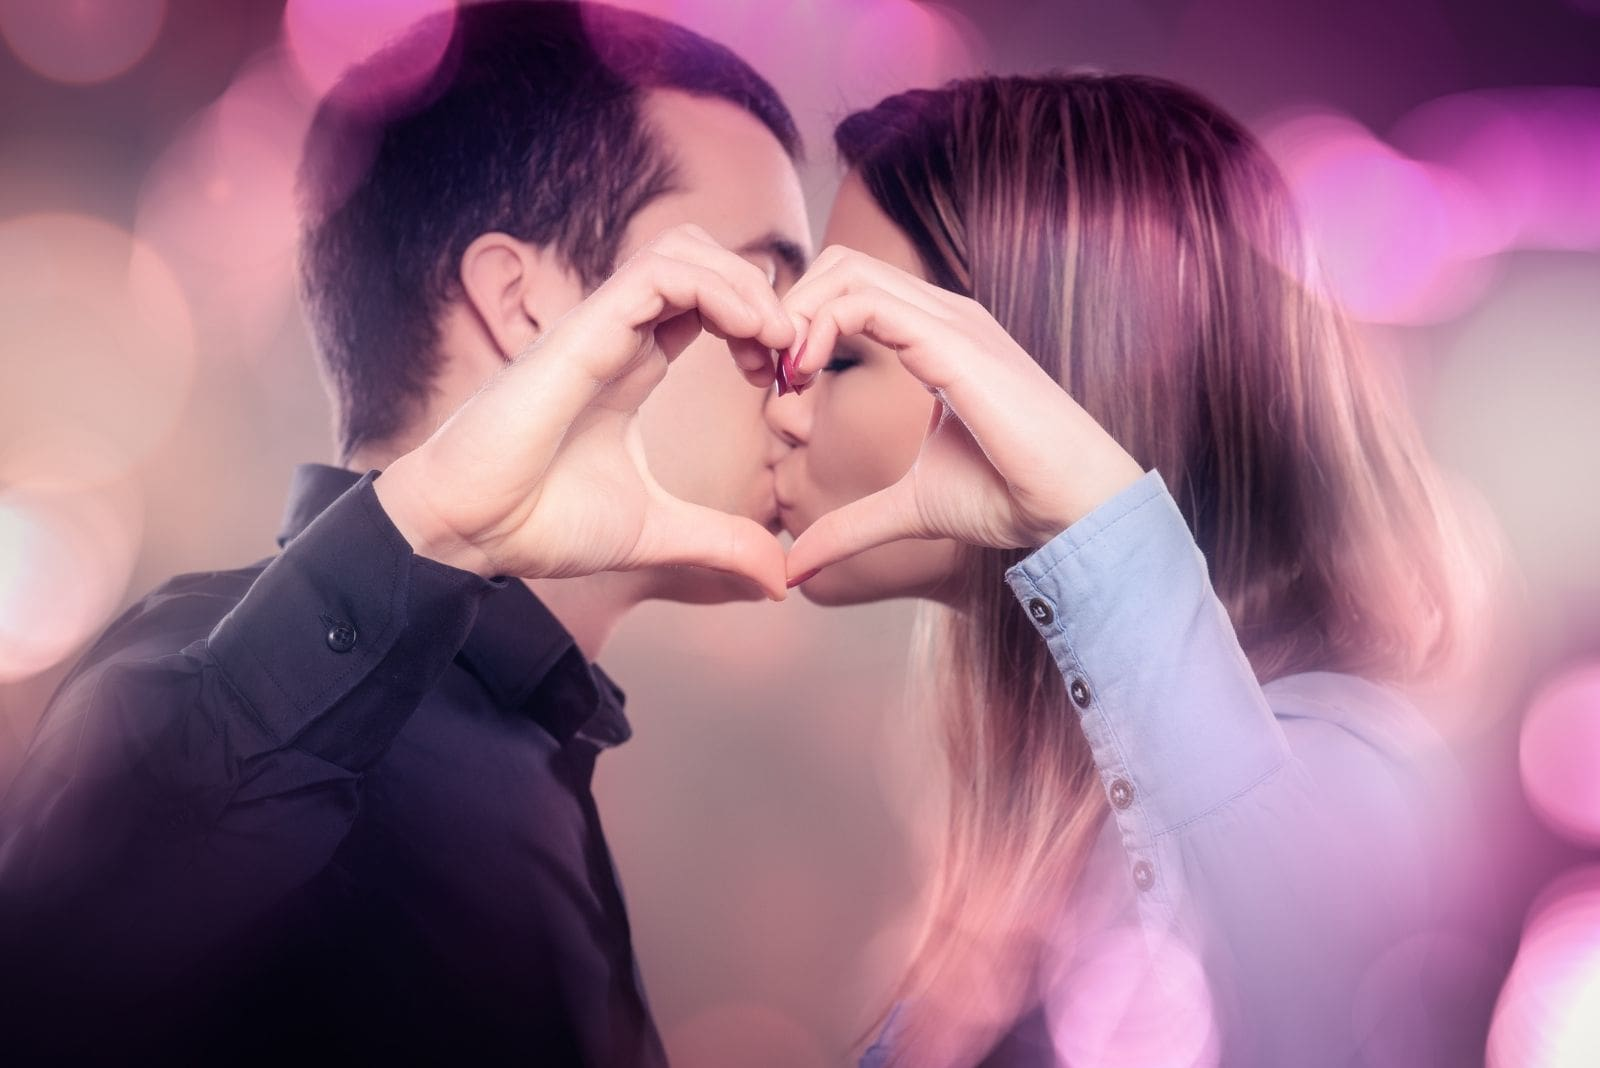 kissing young couple making a heart shape with bubble of colors around